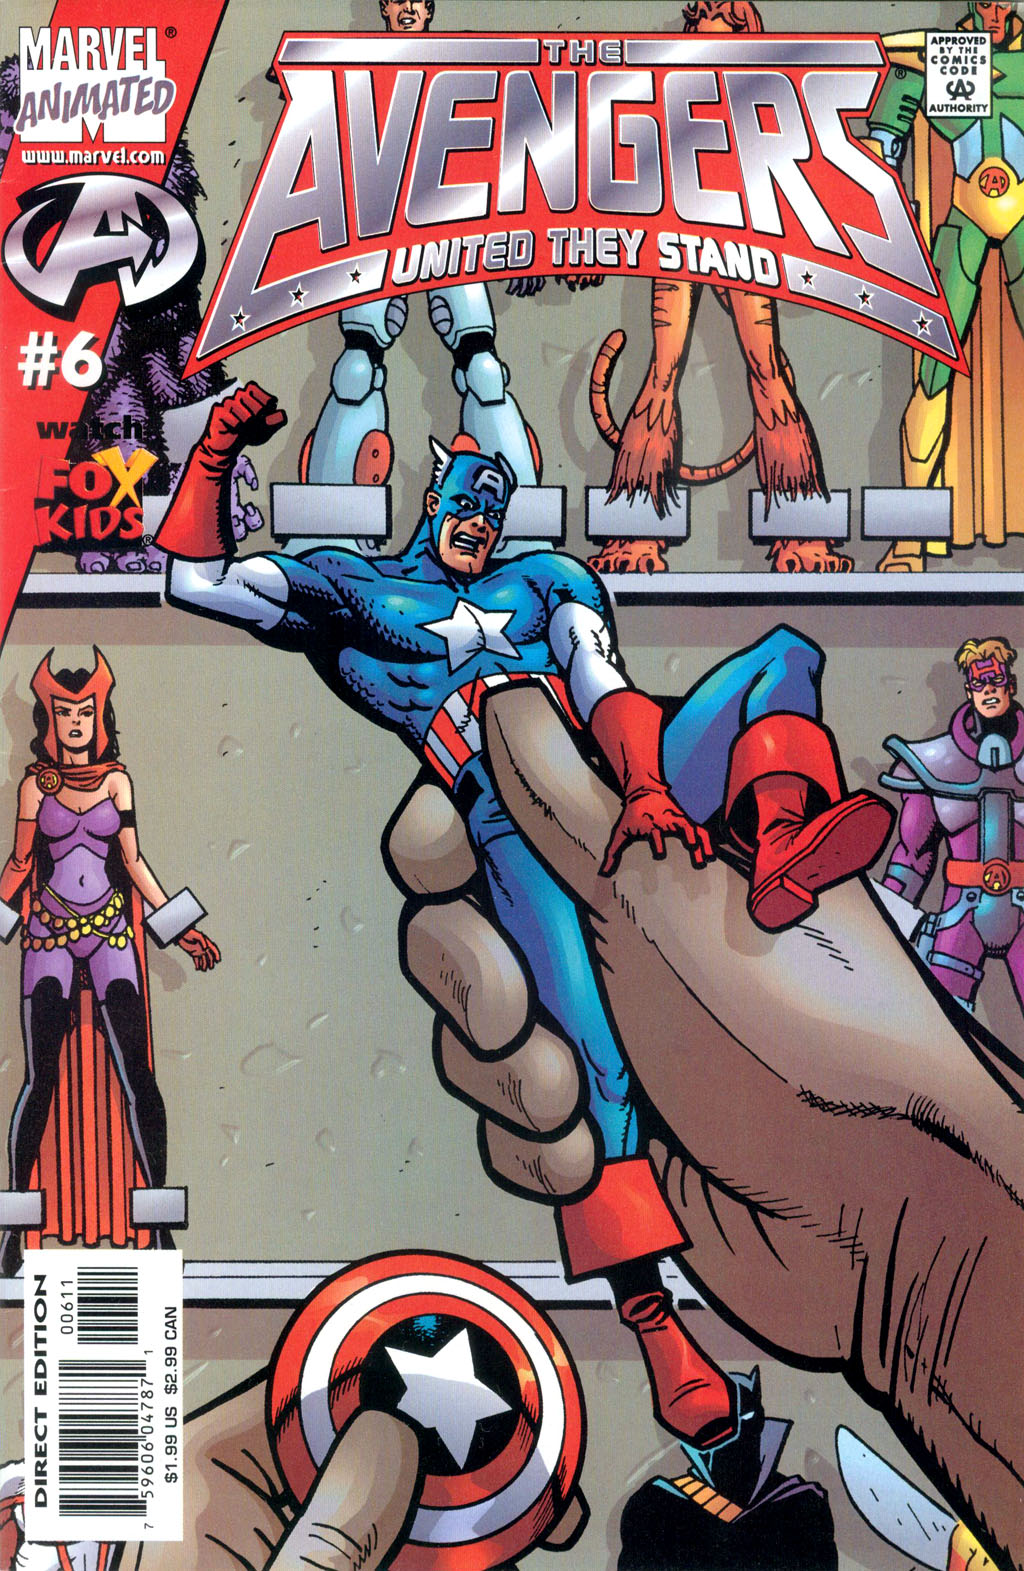 Read online Avengers United They Stand comic -  Issue #6 - 1